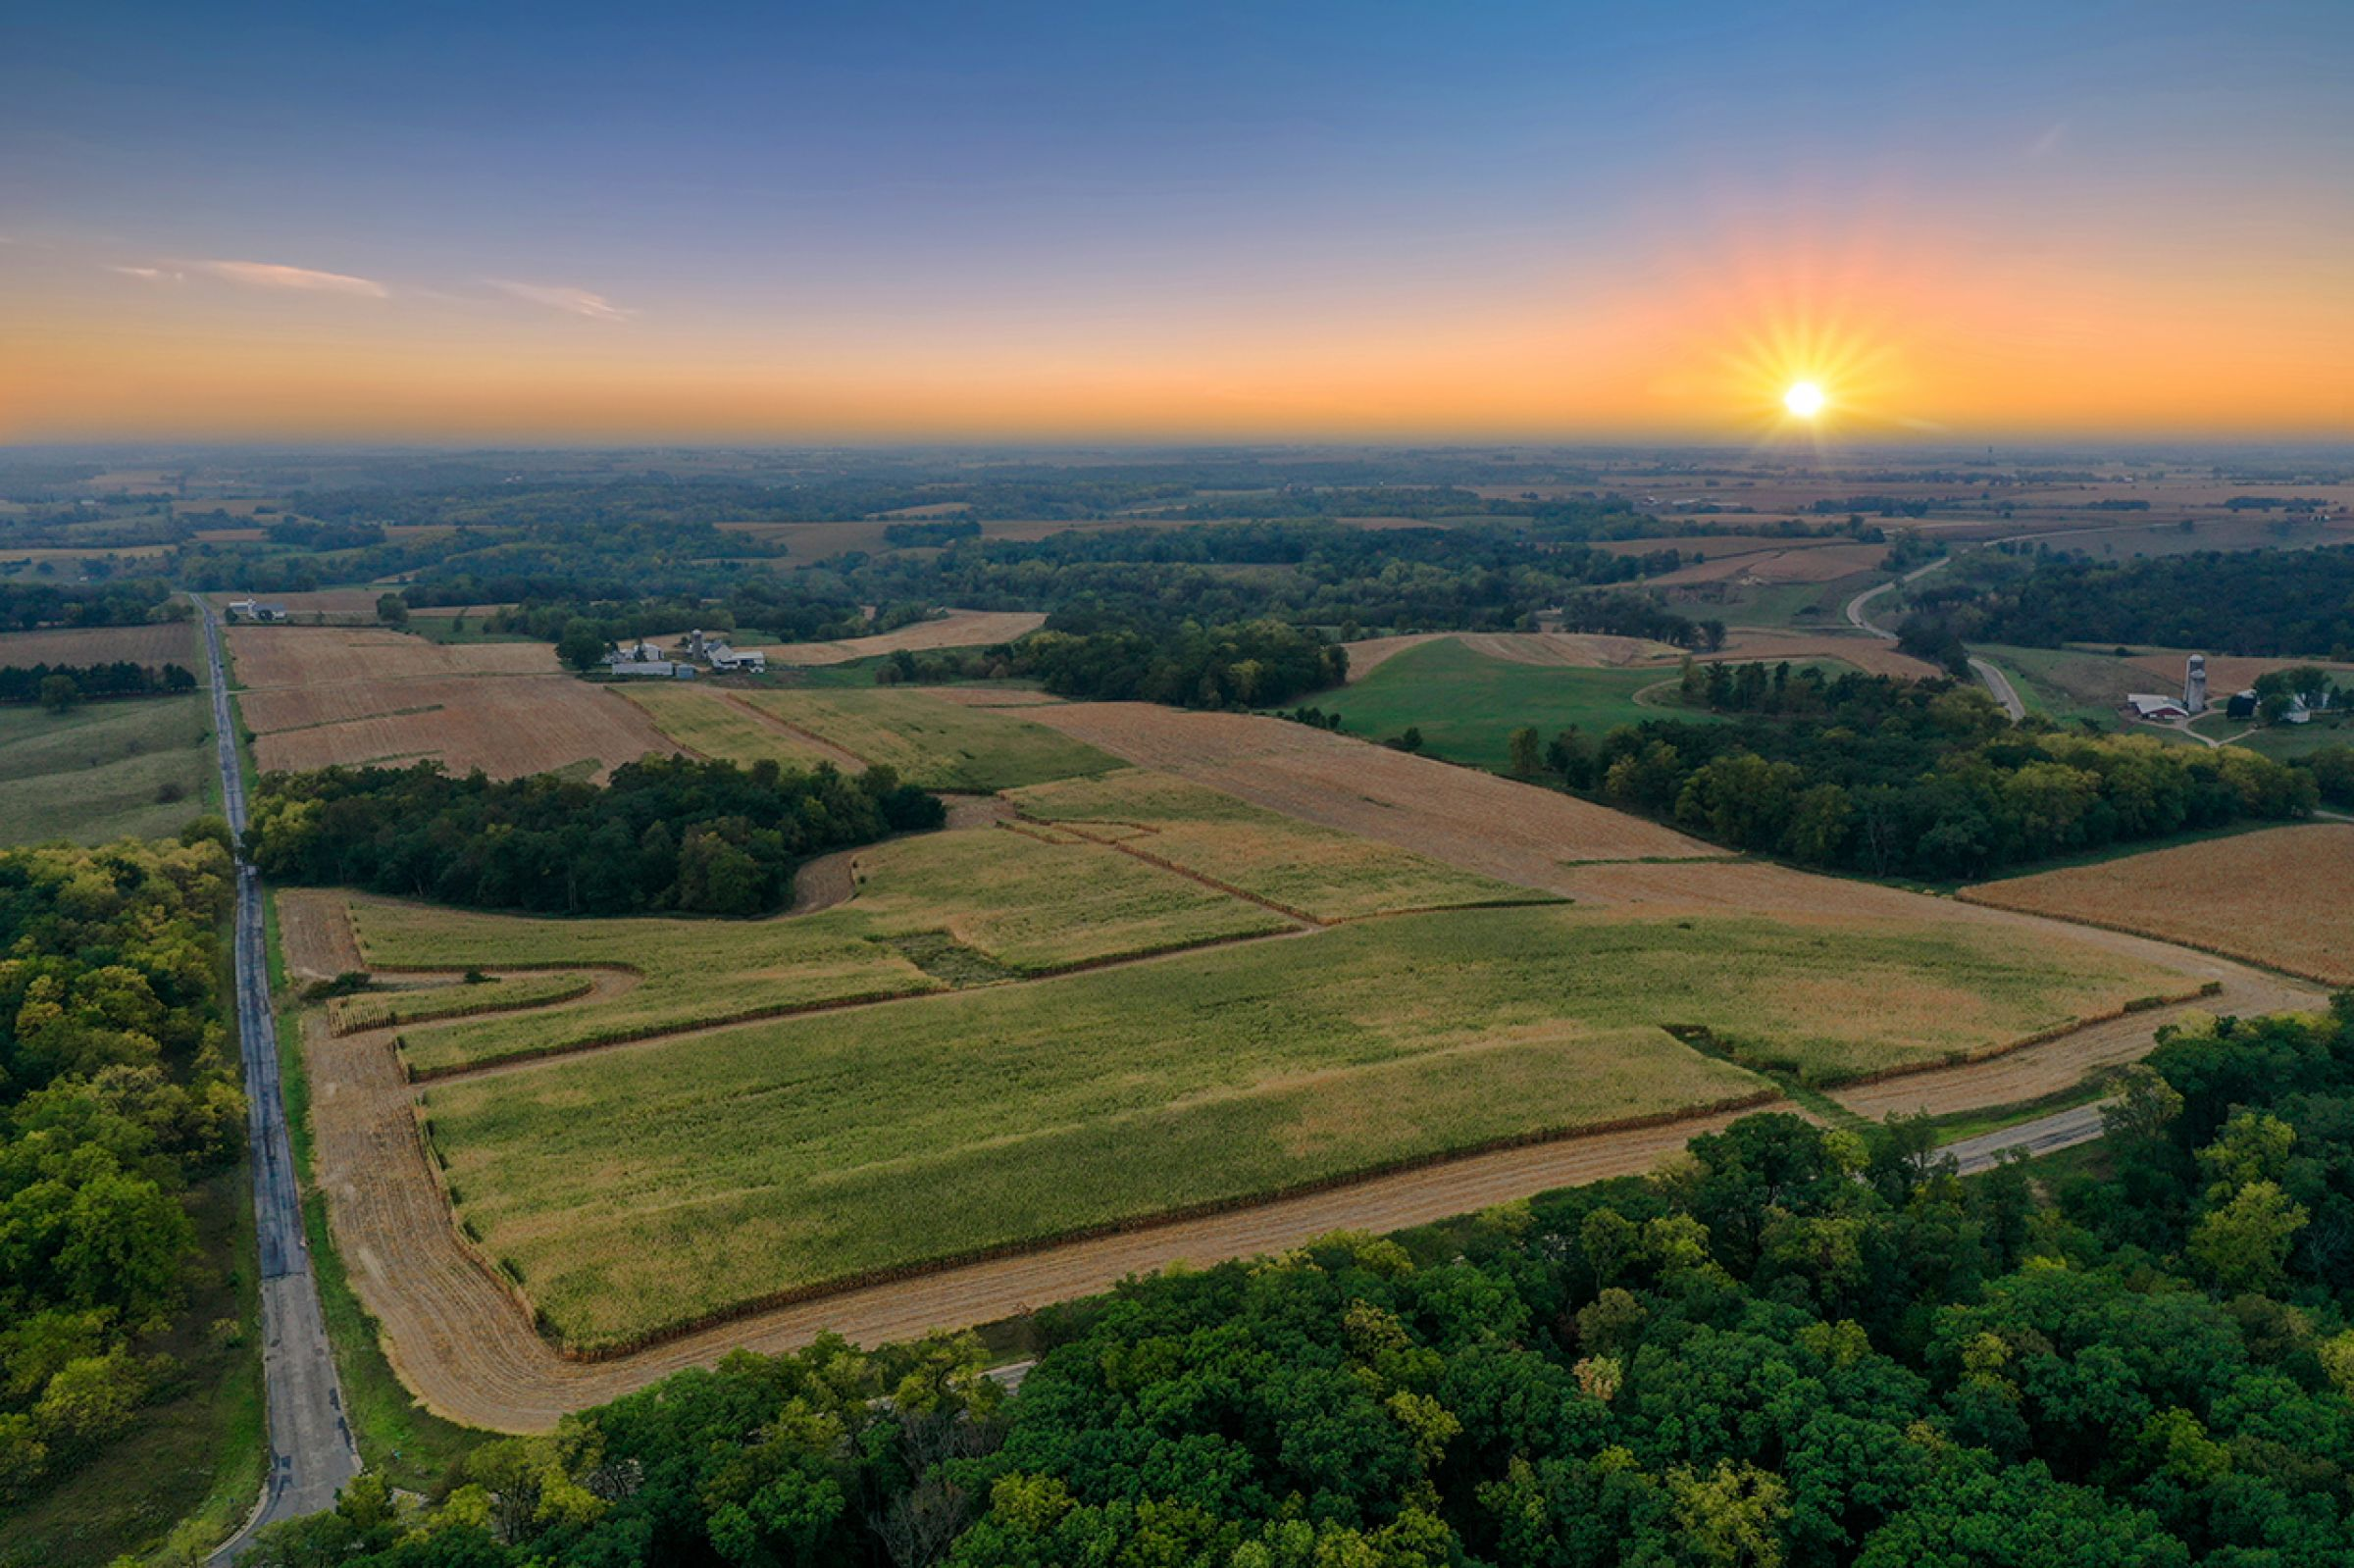 auctions-land-lafayette-county-wisconsin-138-acres-listing-number-15758-3-2021-09-21-155736.jpg